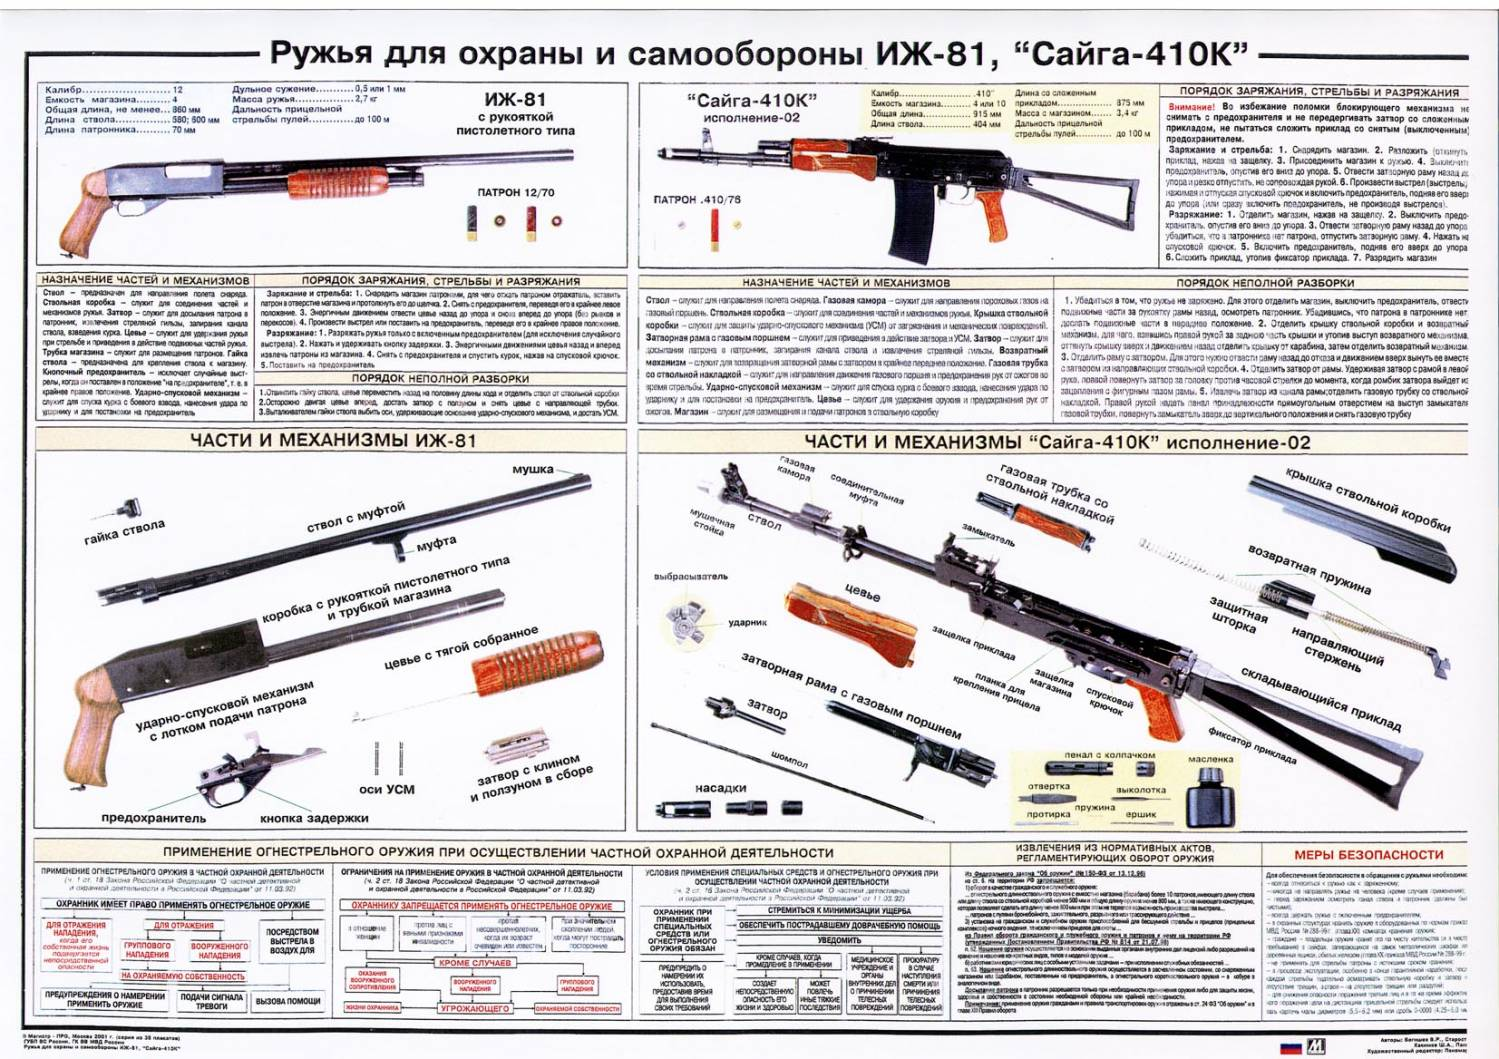 иж 81м